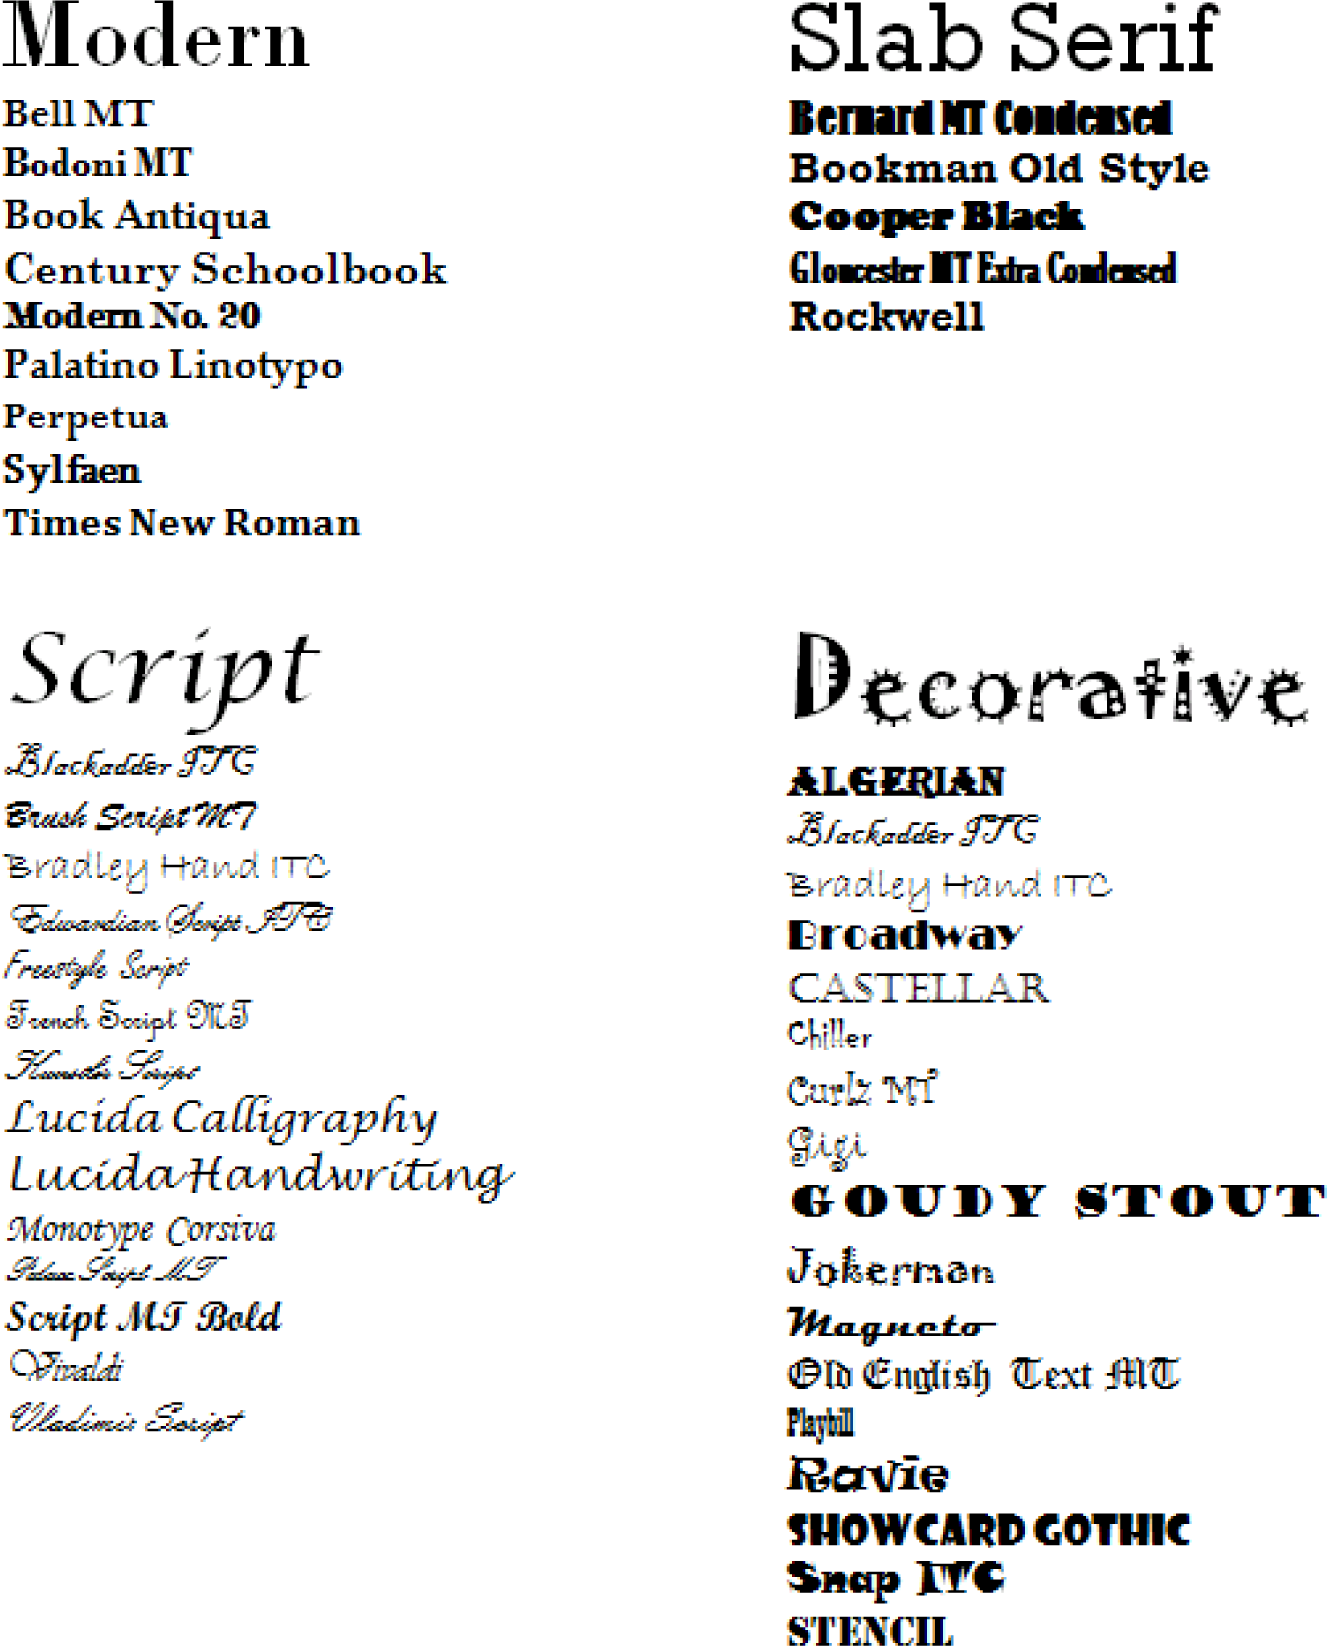 Unable to type in any other font other than Sylfaen in Microsoft Word